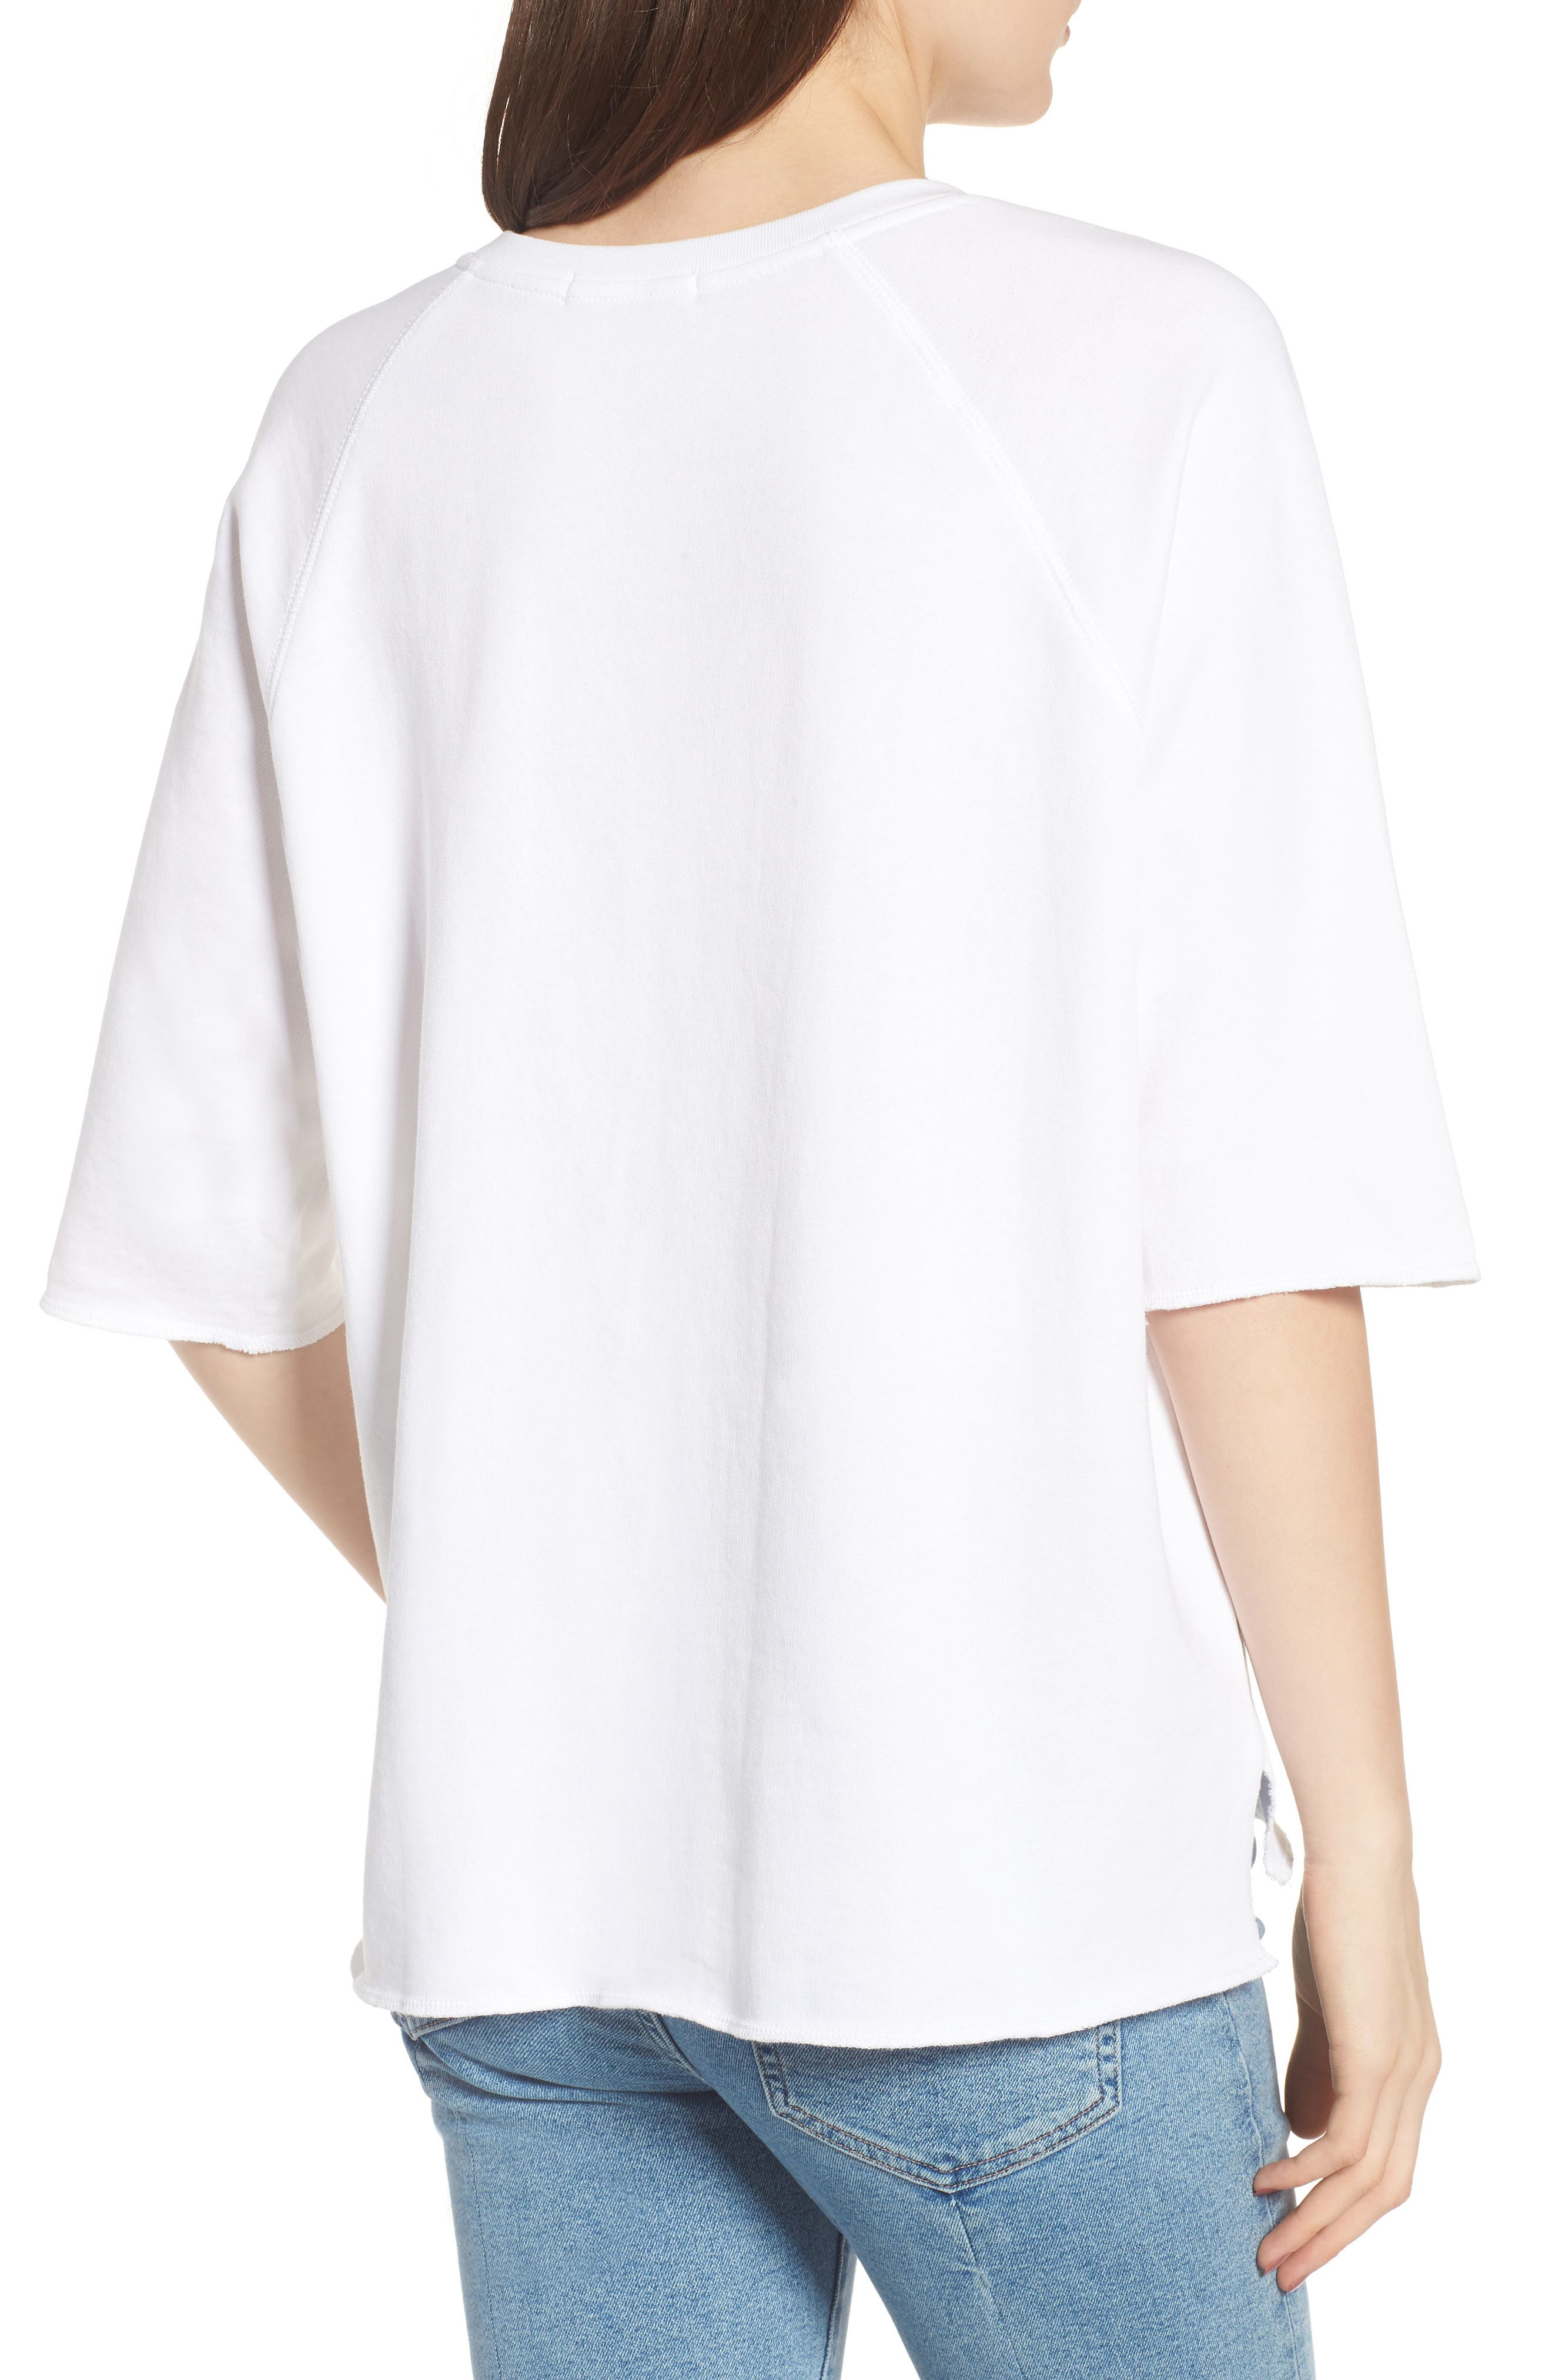 Julie - Vertical Eyelets Terry Top,                             Alternate thumbnail 2, color,                             WHITE